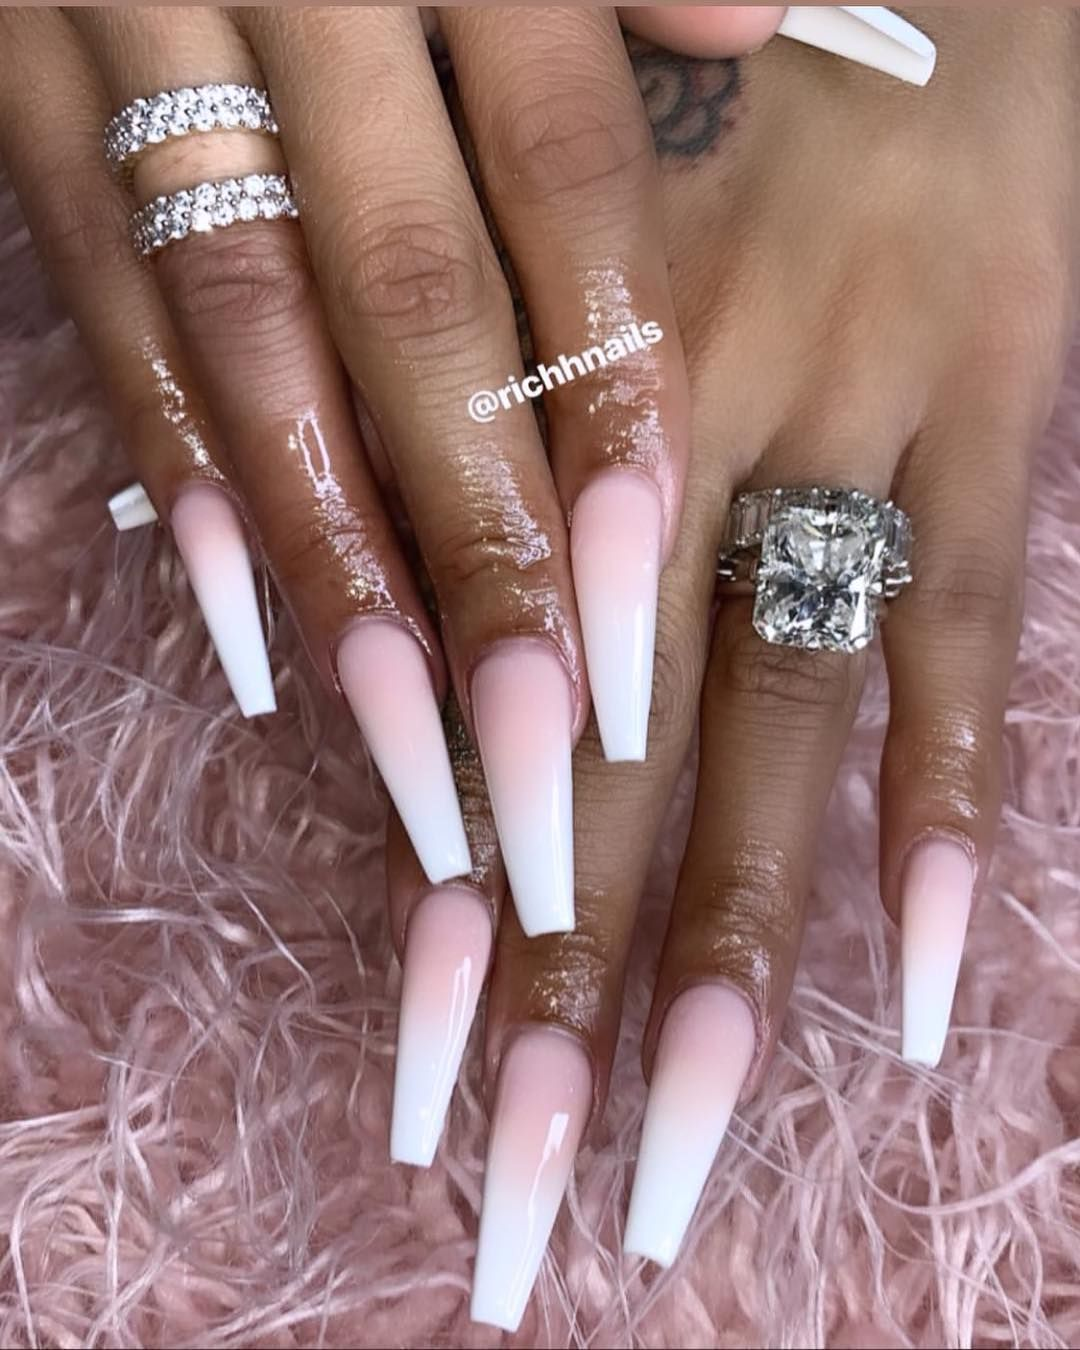 Lira Mercer On Instagram Newfind Met This Young Talented Nail Tech I Loveeeee My Nails Richhnails Atlant Simple Acrylic Nails Nail Shapes Nail Tips